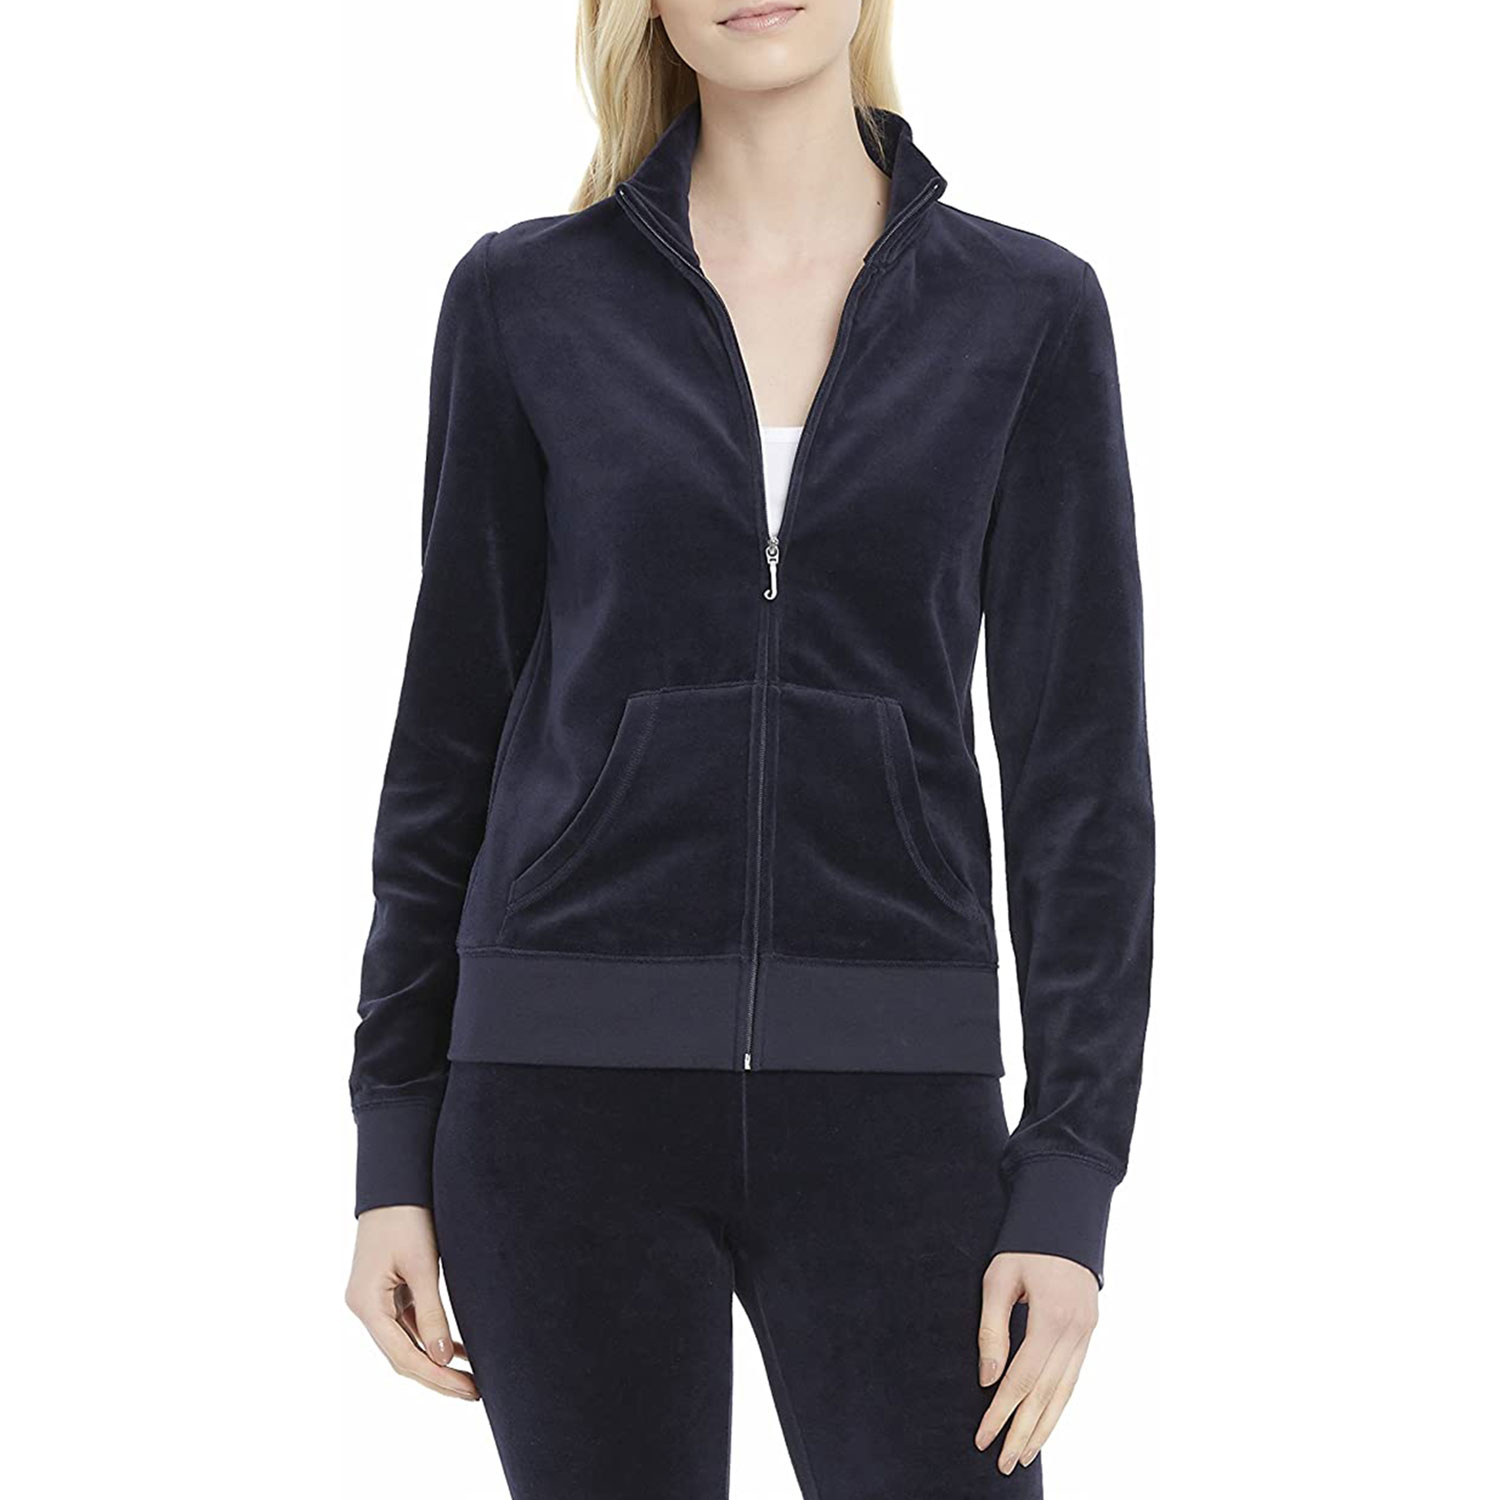 juicy couture black label velour fitted jacket